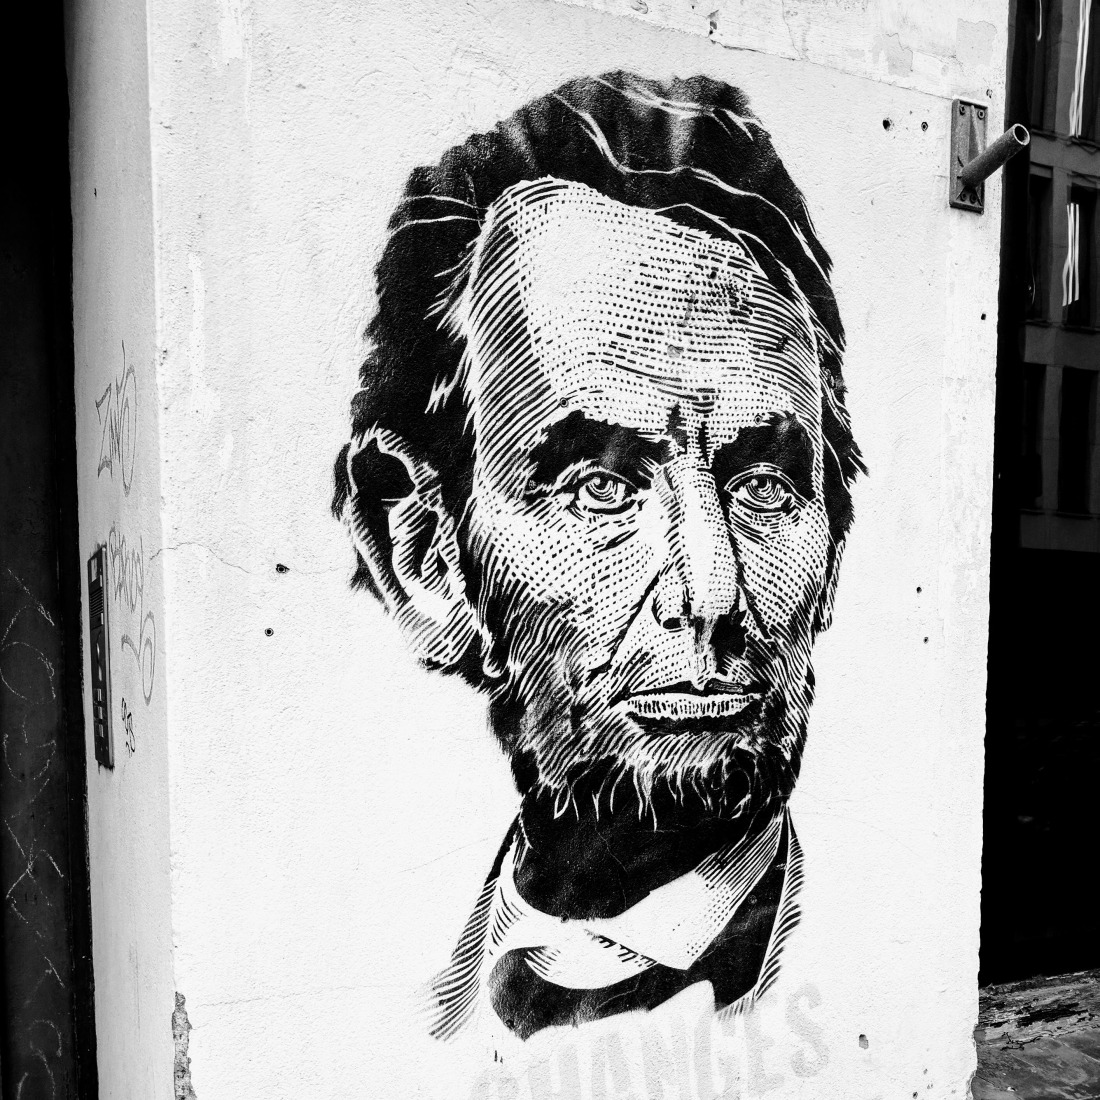 Abraham Lincoln in Berlin, published ArtTravel Blog. Photo by Birgit Pauli-Haack